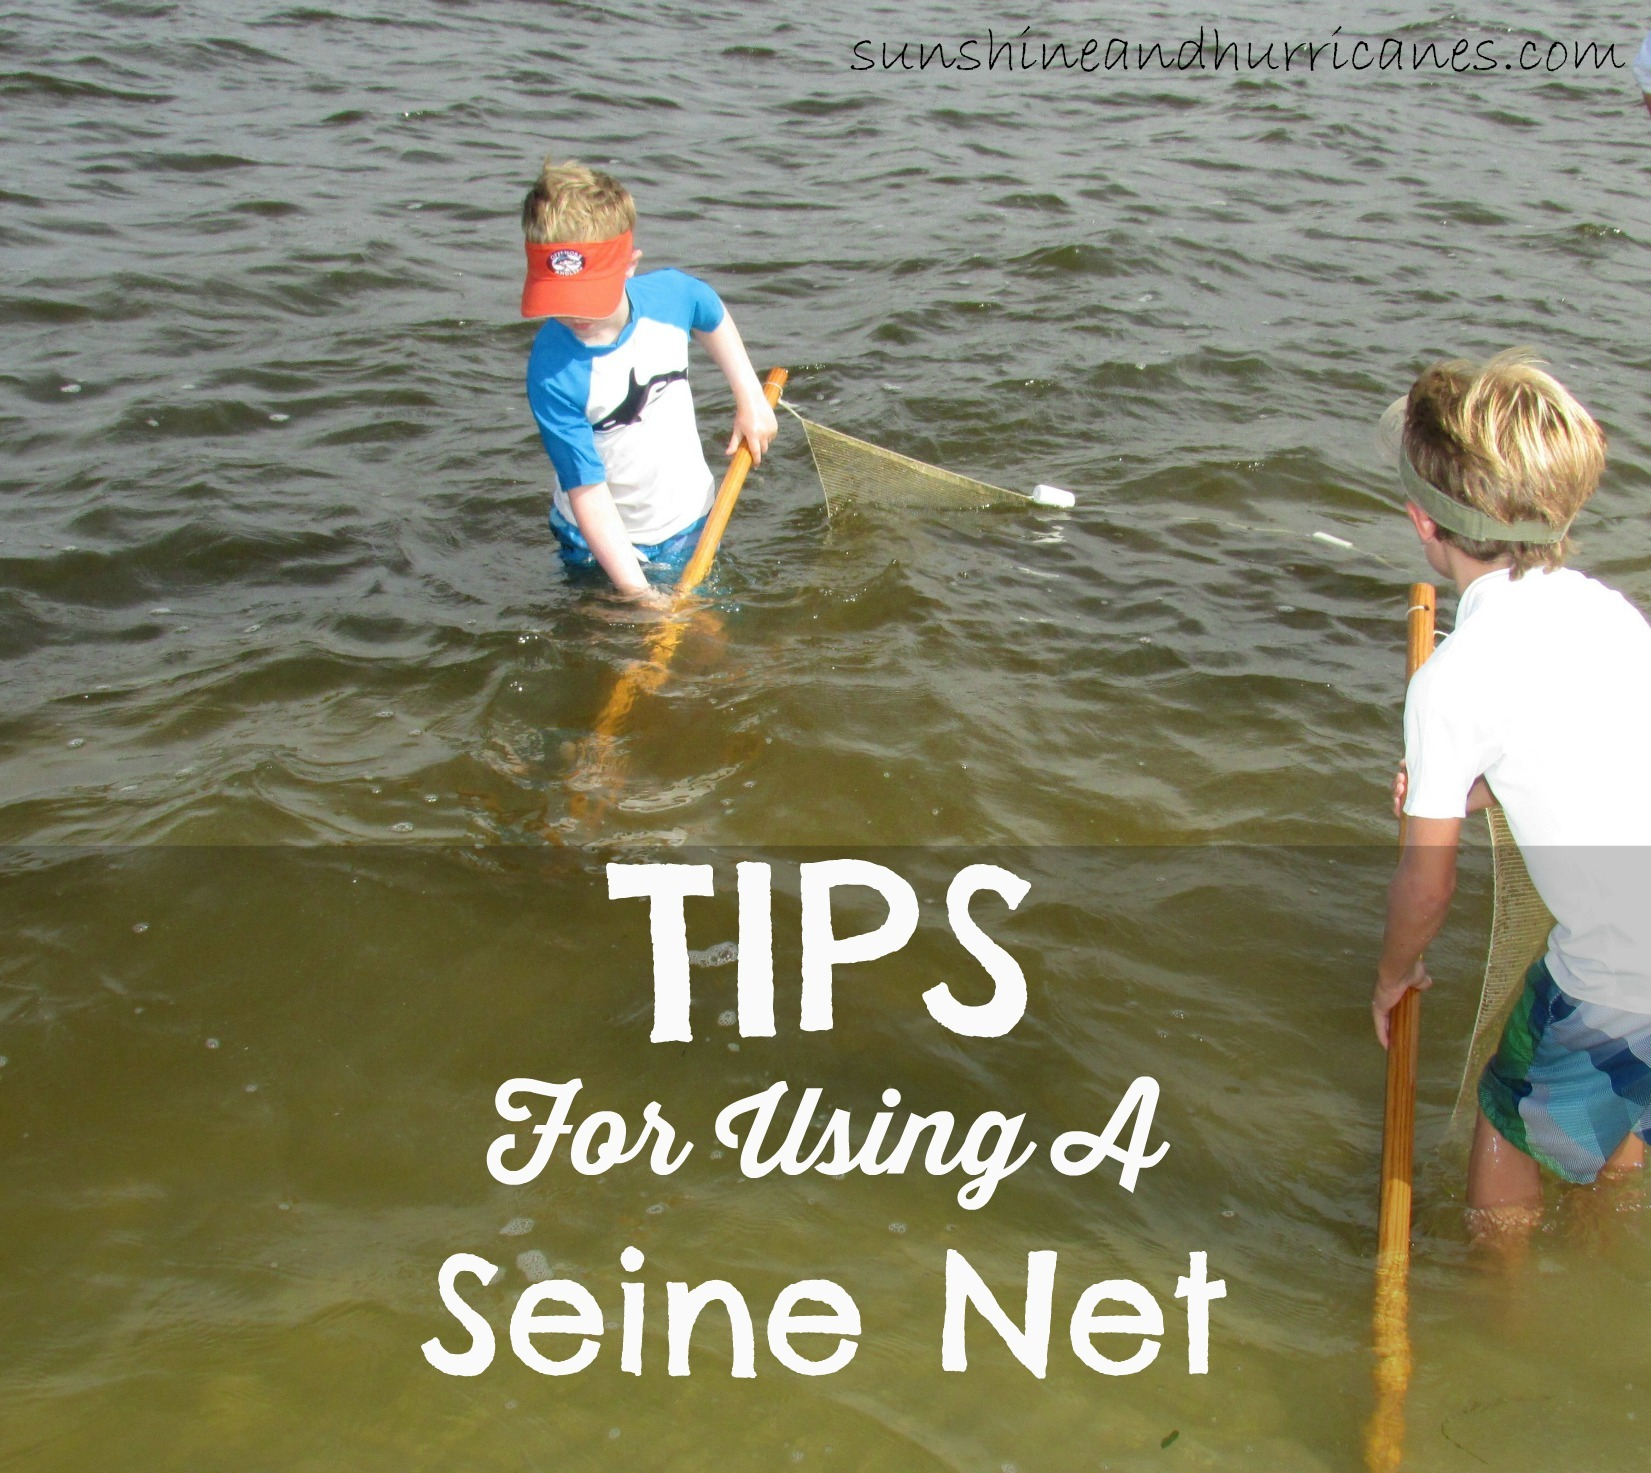 tips for using a seine net